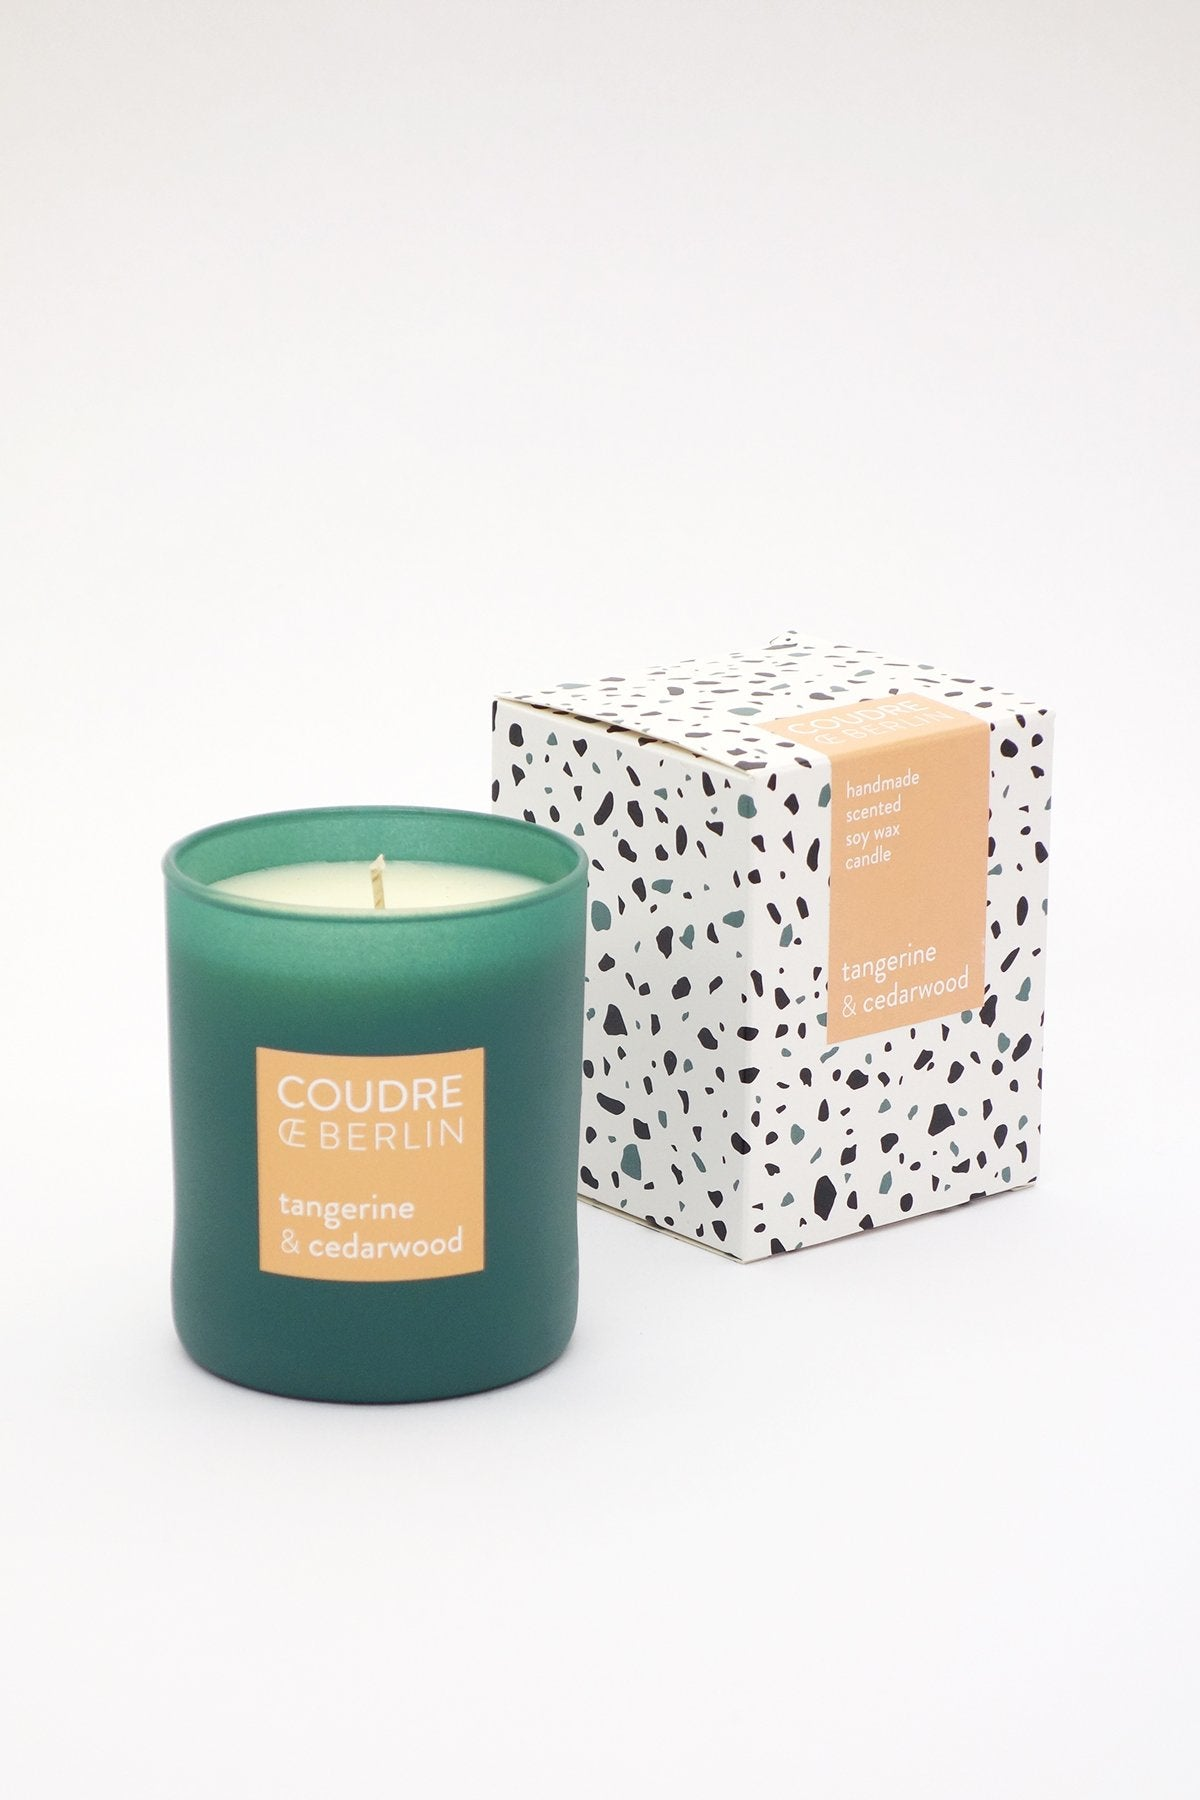 tangerine & cedarwood / CONTEMPORARIES Scented Candle